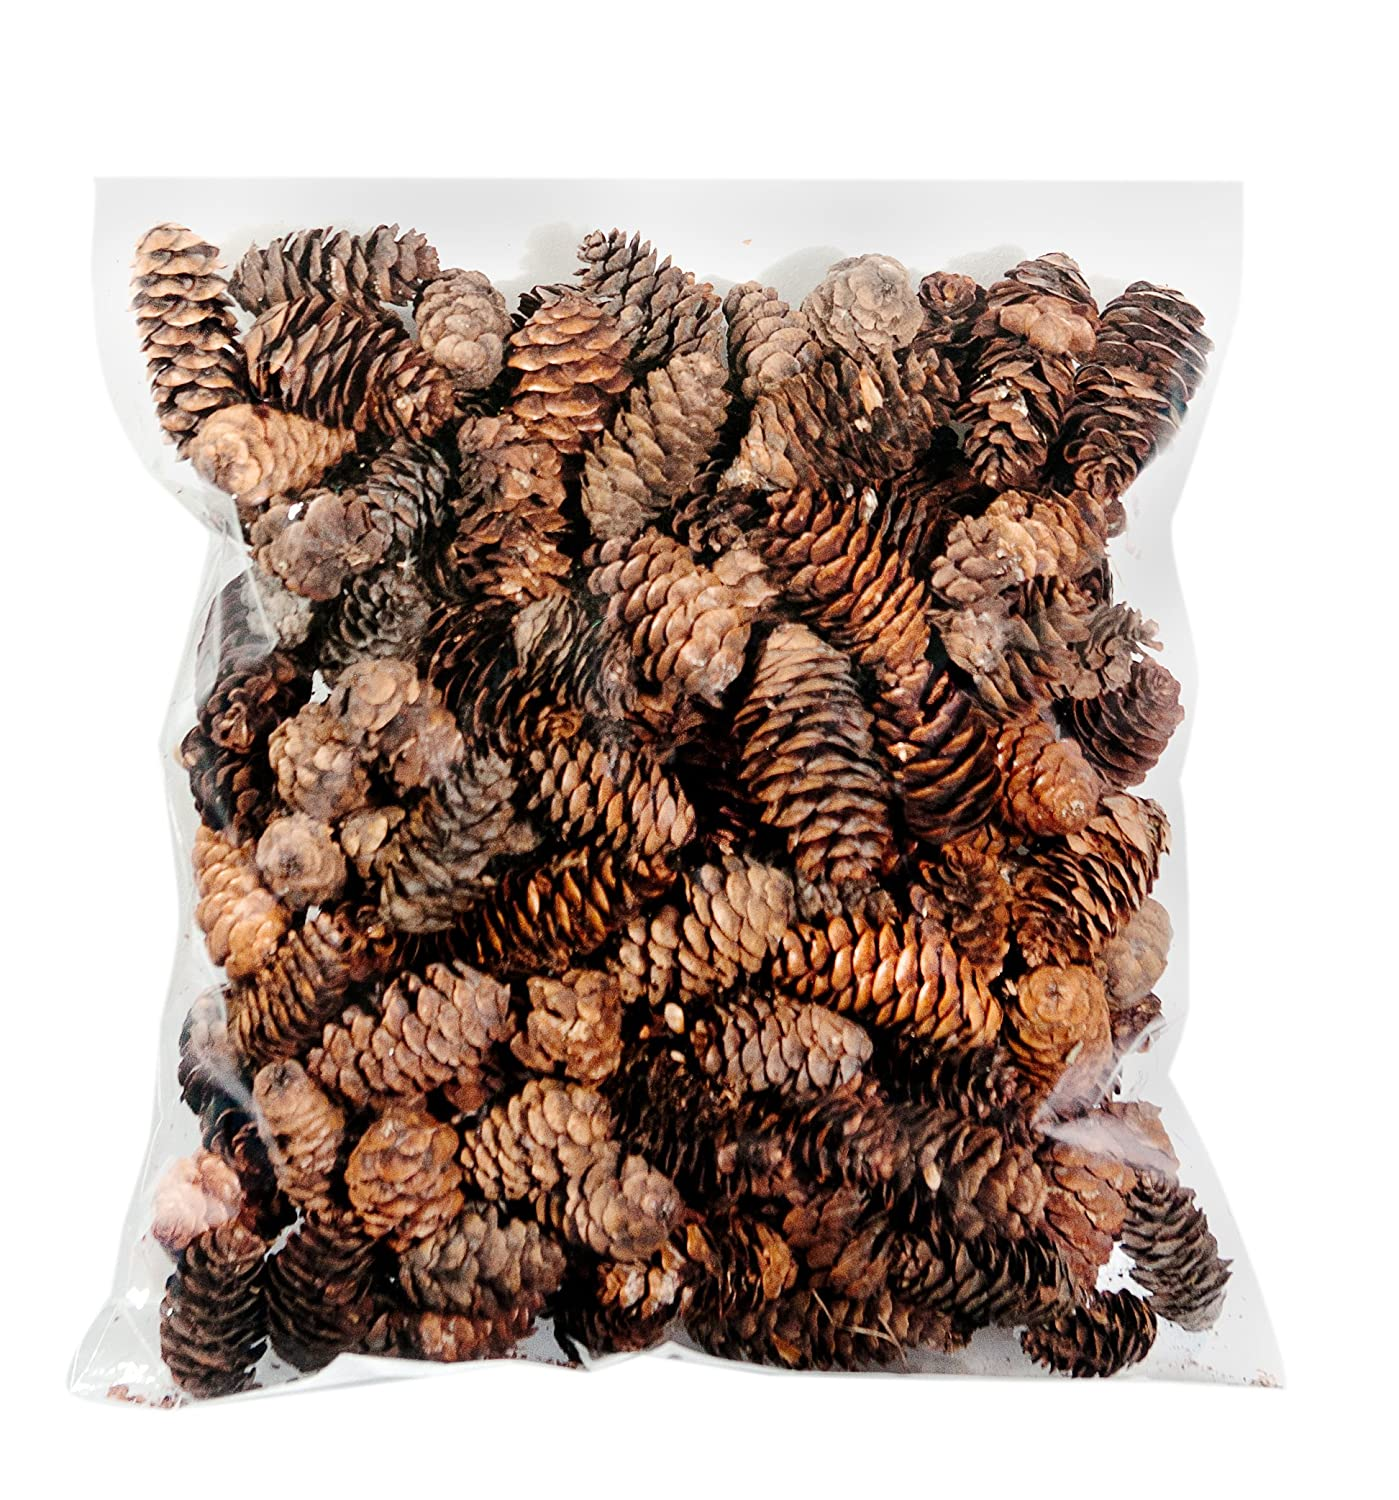 Decorative pine cones